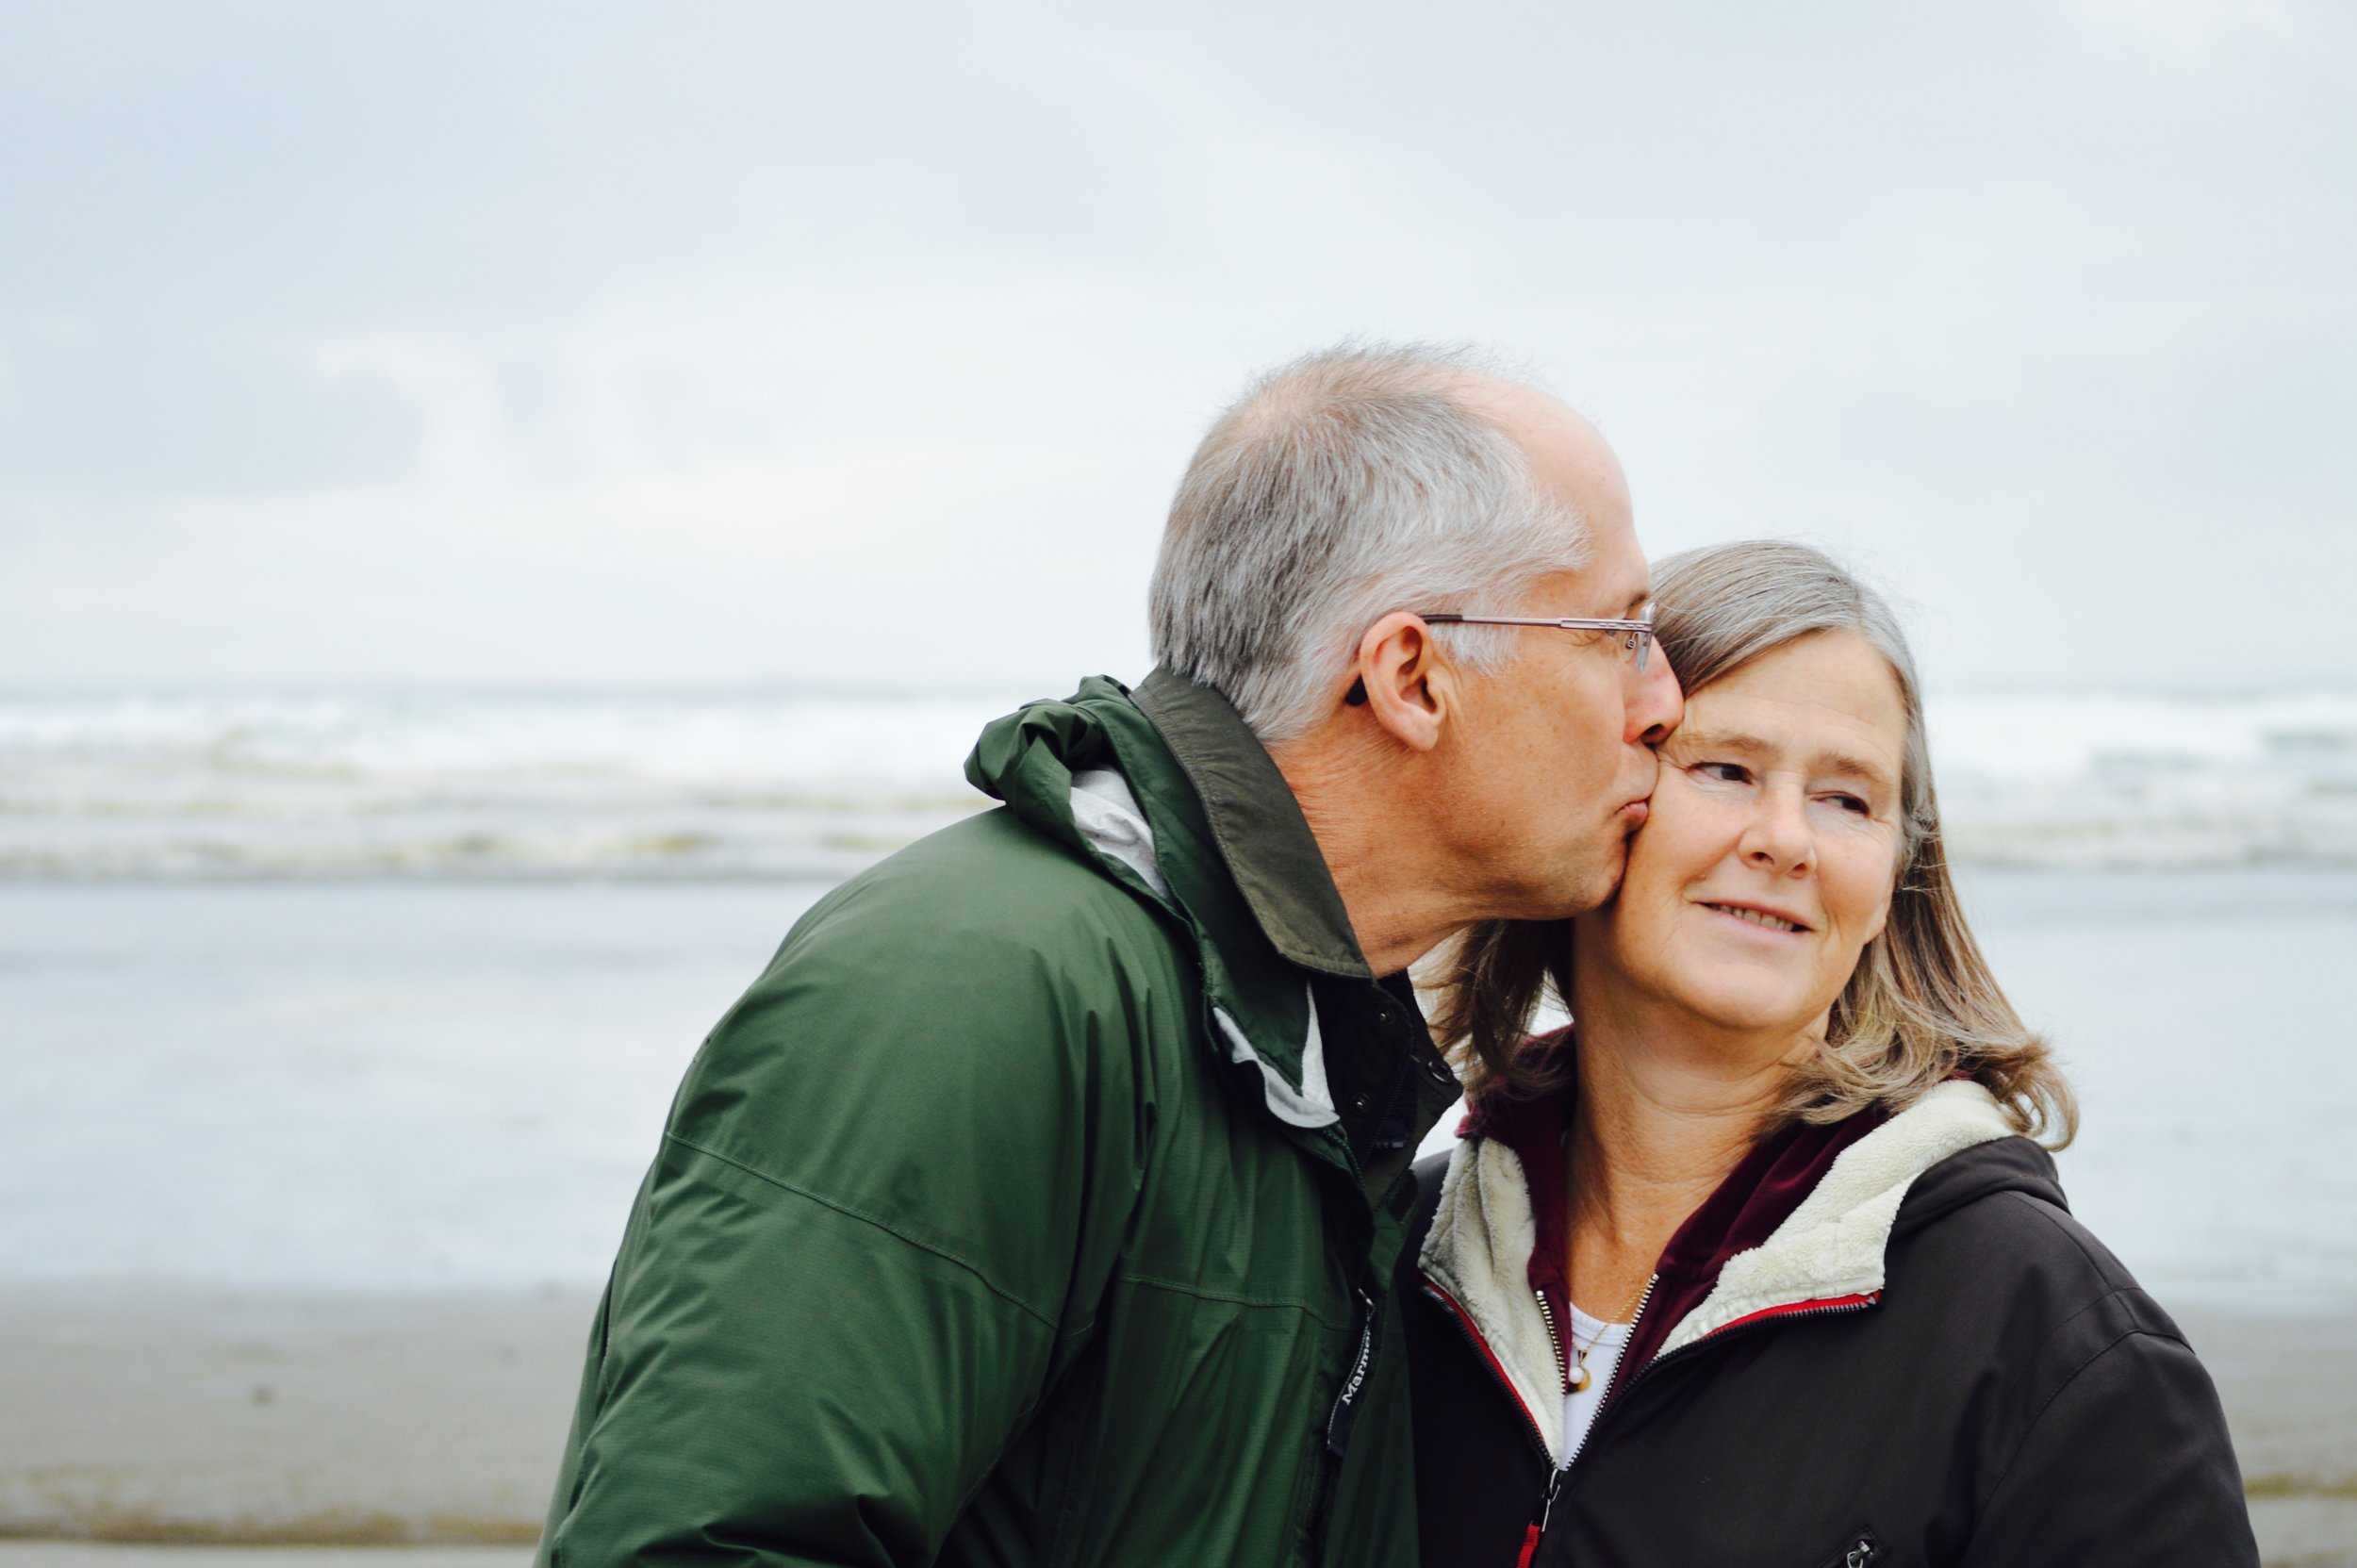 KISSING-RETIRED-COUPLE-AT-BEACH.JPG